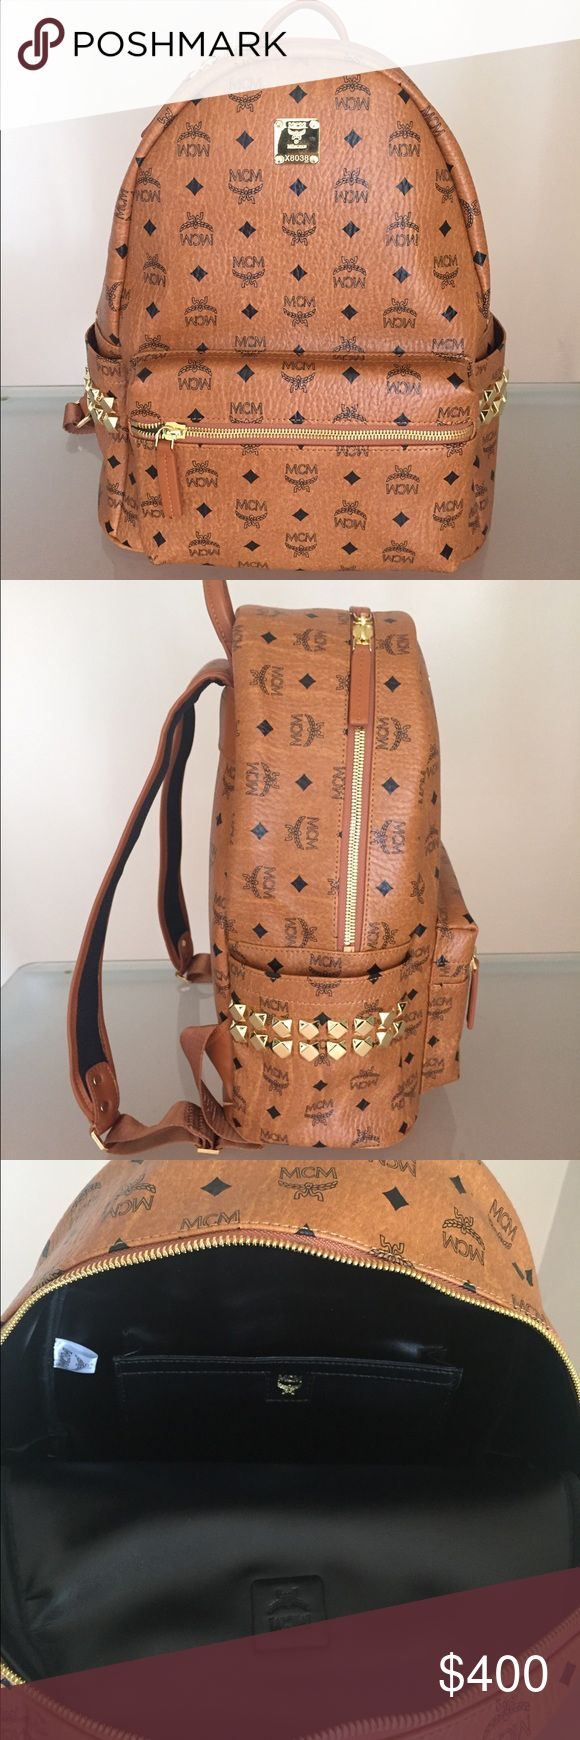 MCM Backpack Brown MCM Cognac Backpack bag Guaranteed Authentic, 9.5/10 condition. Medium Sized. Bags Backpacks